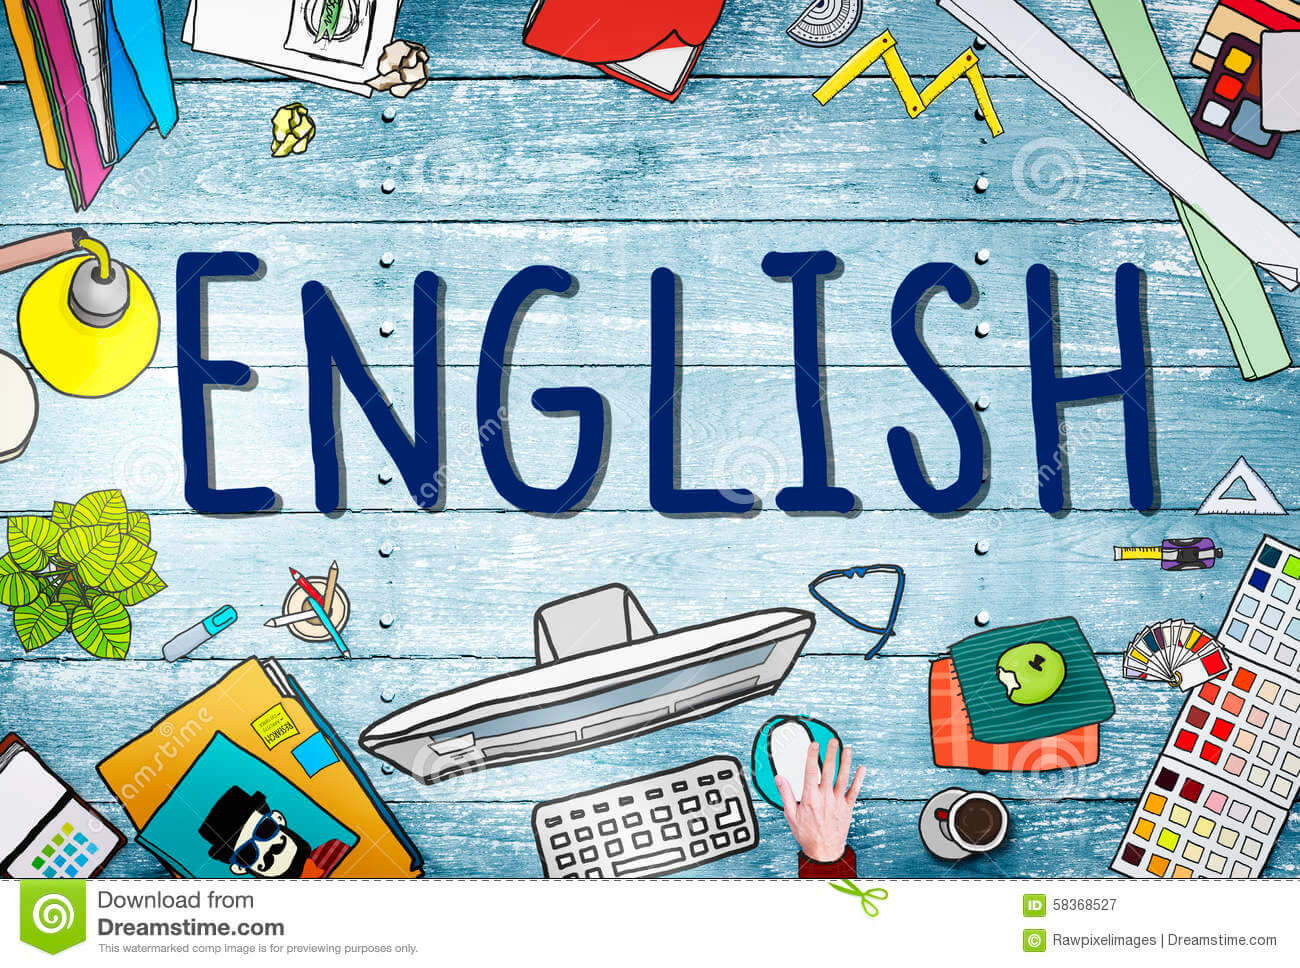 english-british-england-language-education-concept-58368527.jpg